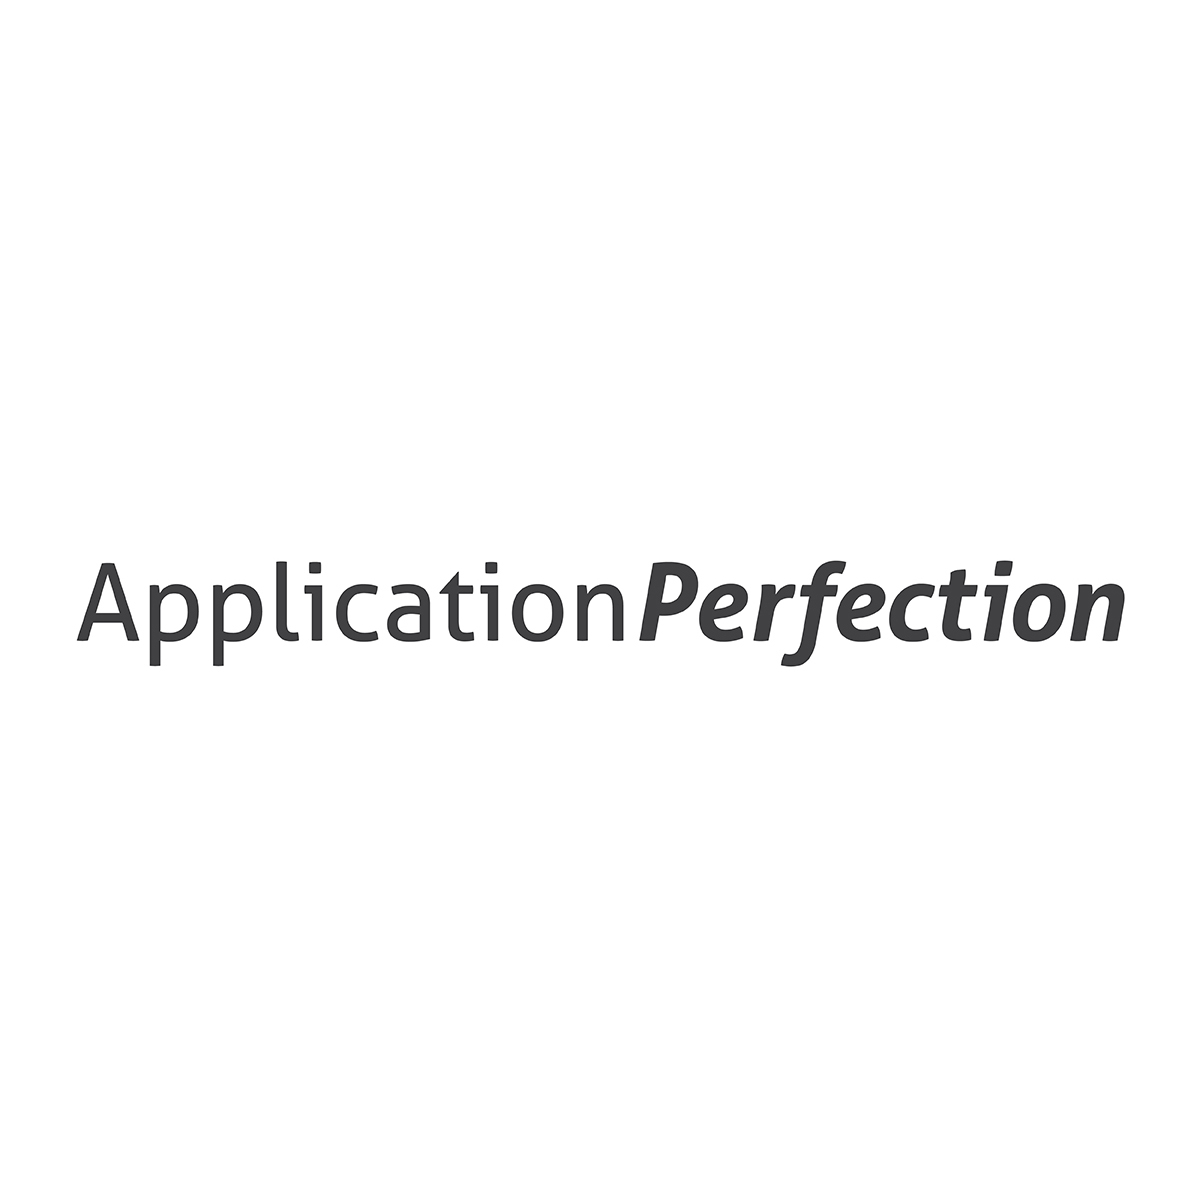 Application Perfection